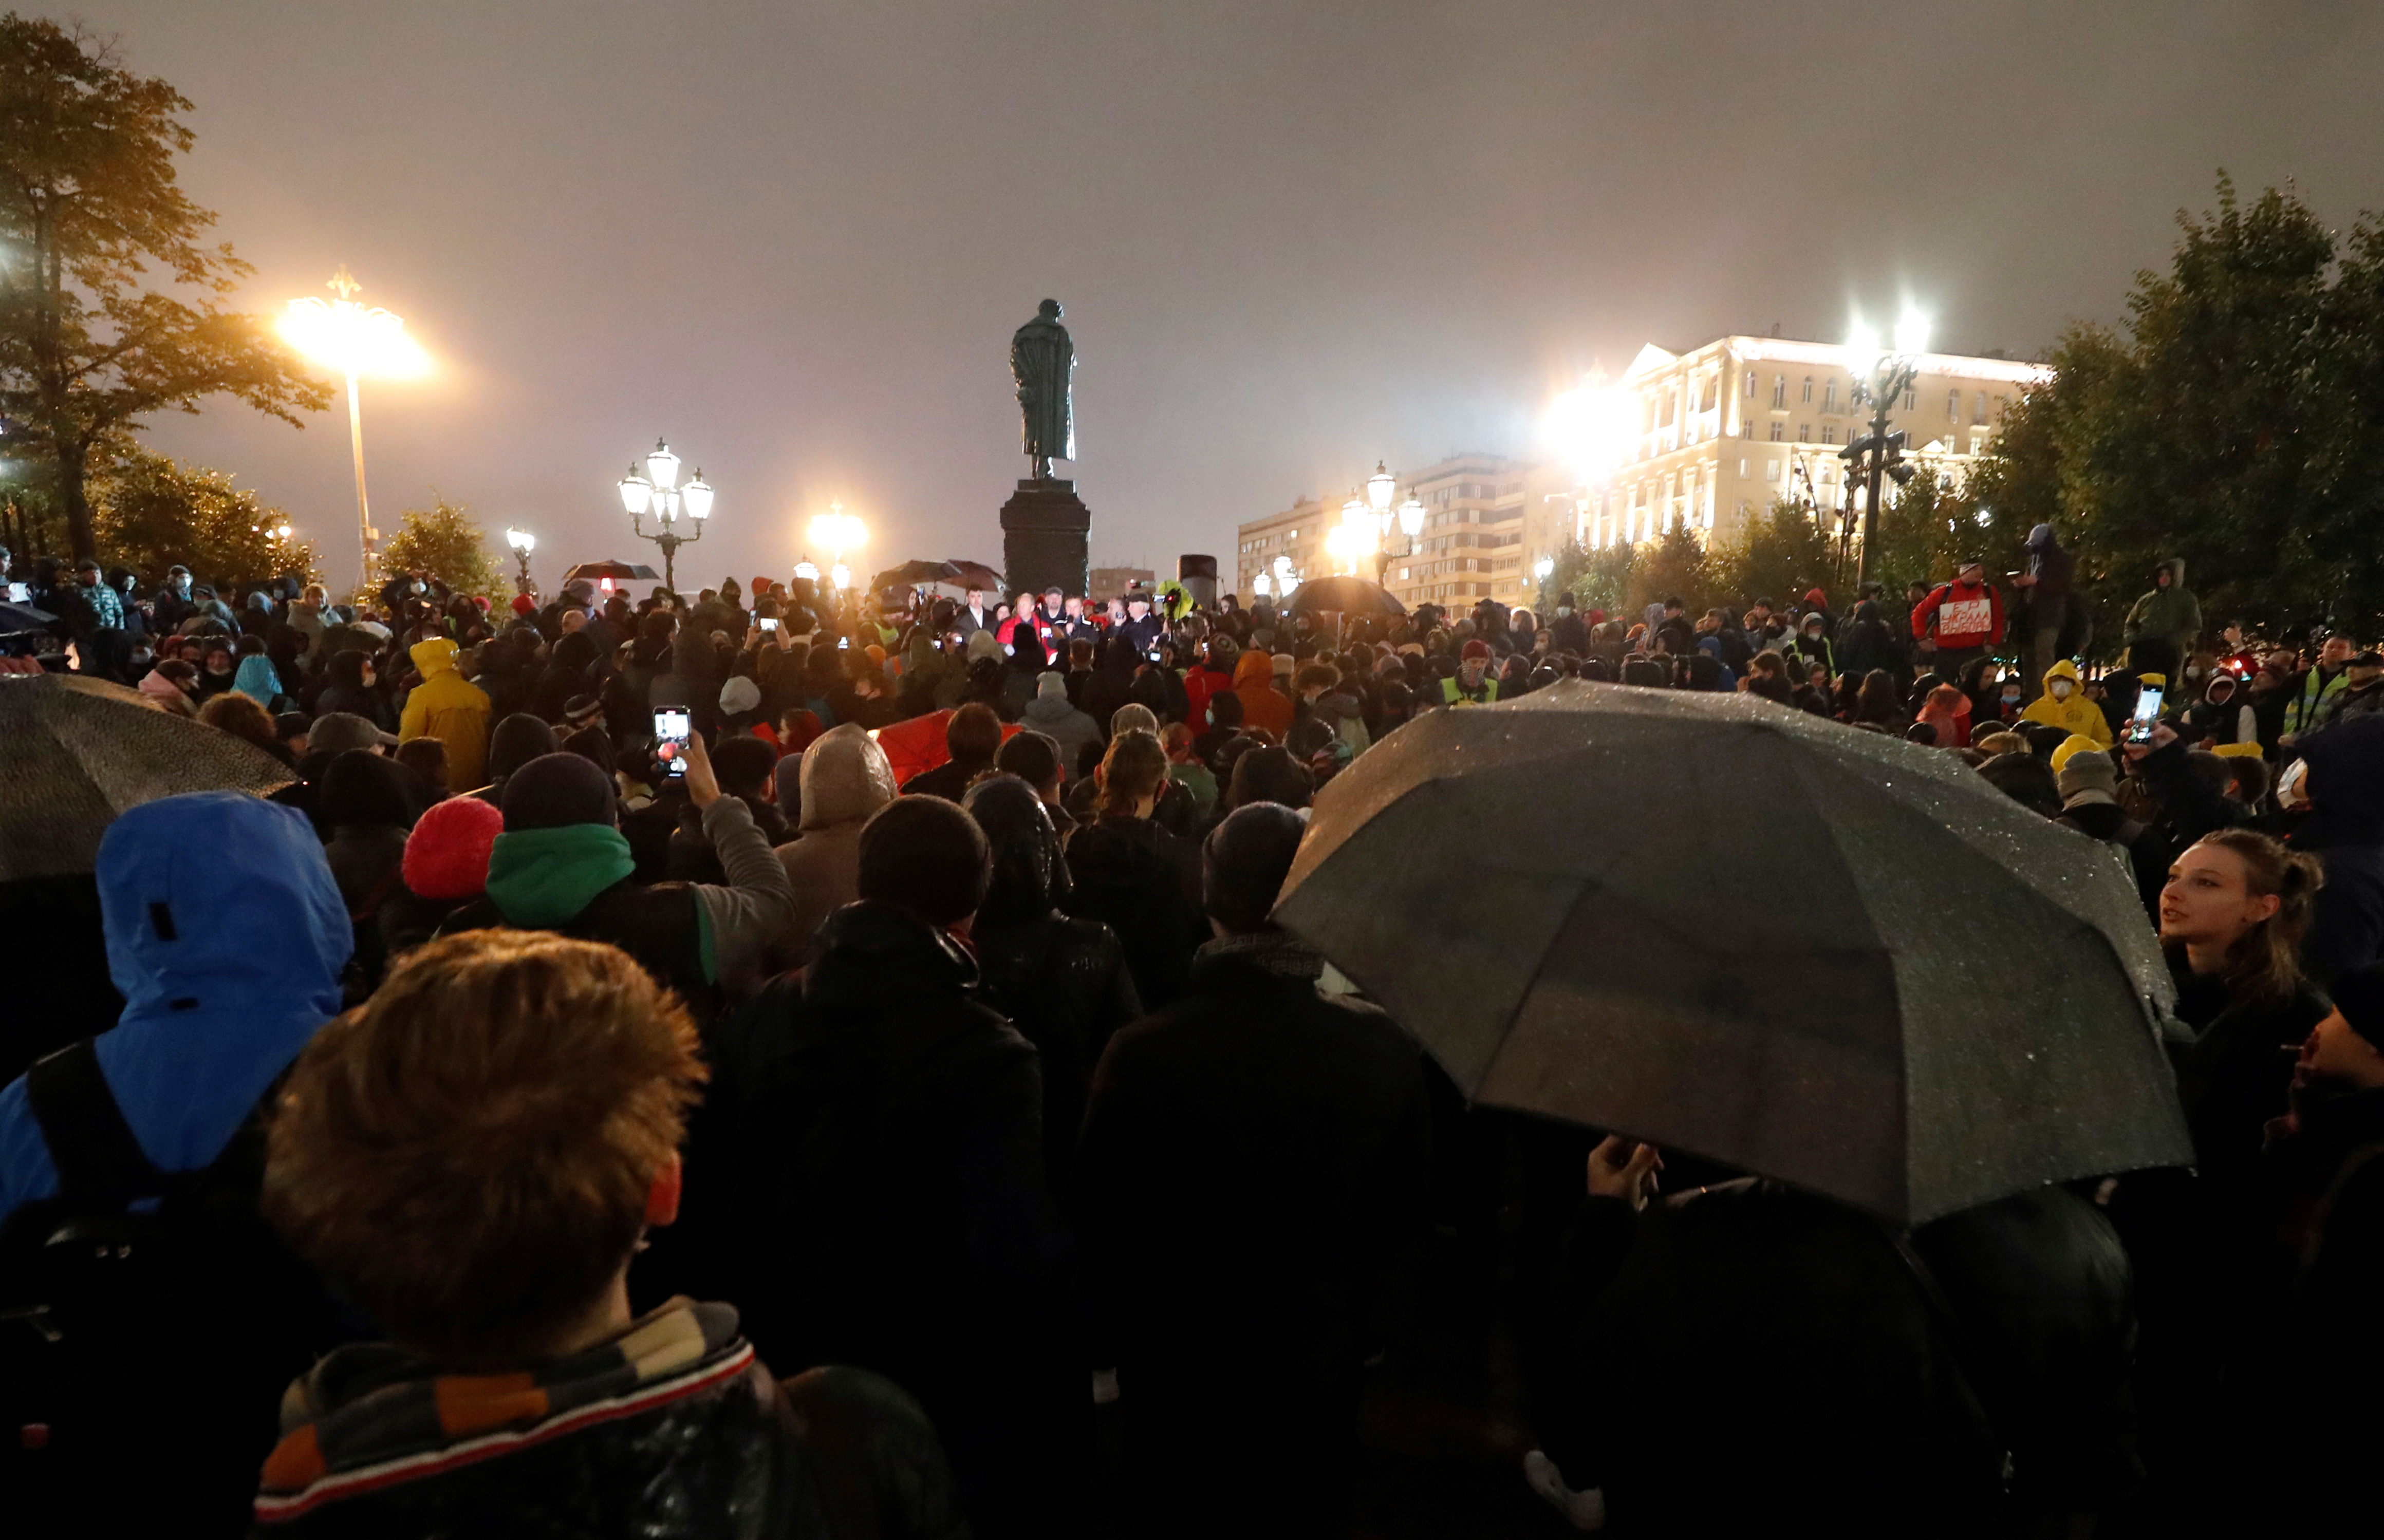 Members and supporters of the Russian Communist Party attend a rally to protest against the preliminary results of the parliamentary election in Moscow, Russia September 20, 2021. REUTERS/Shamil Zhumatov